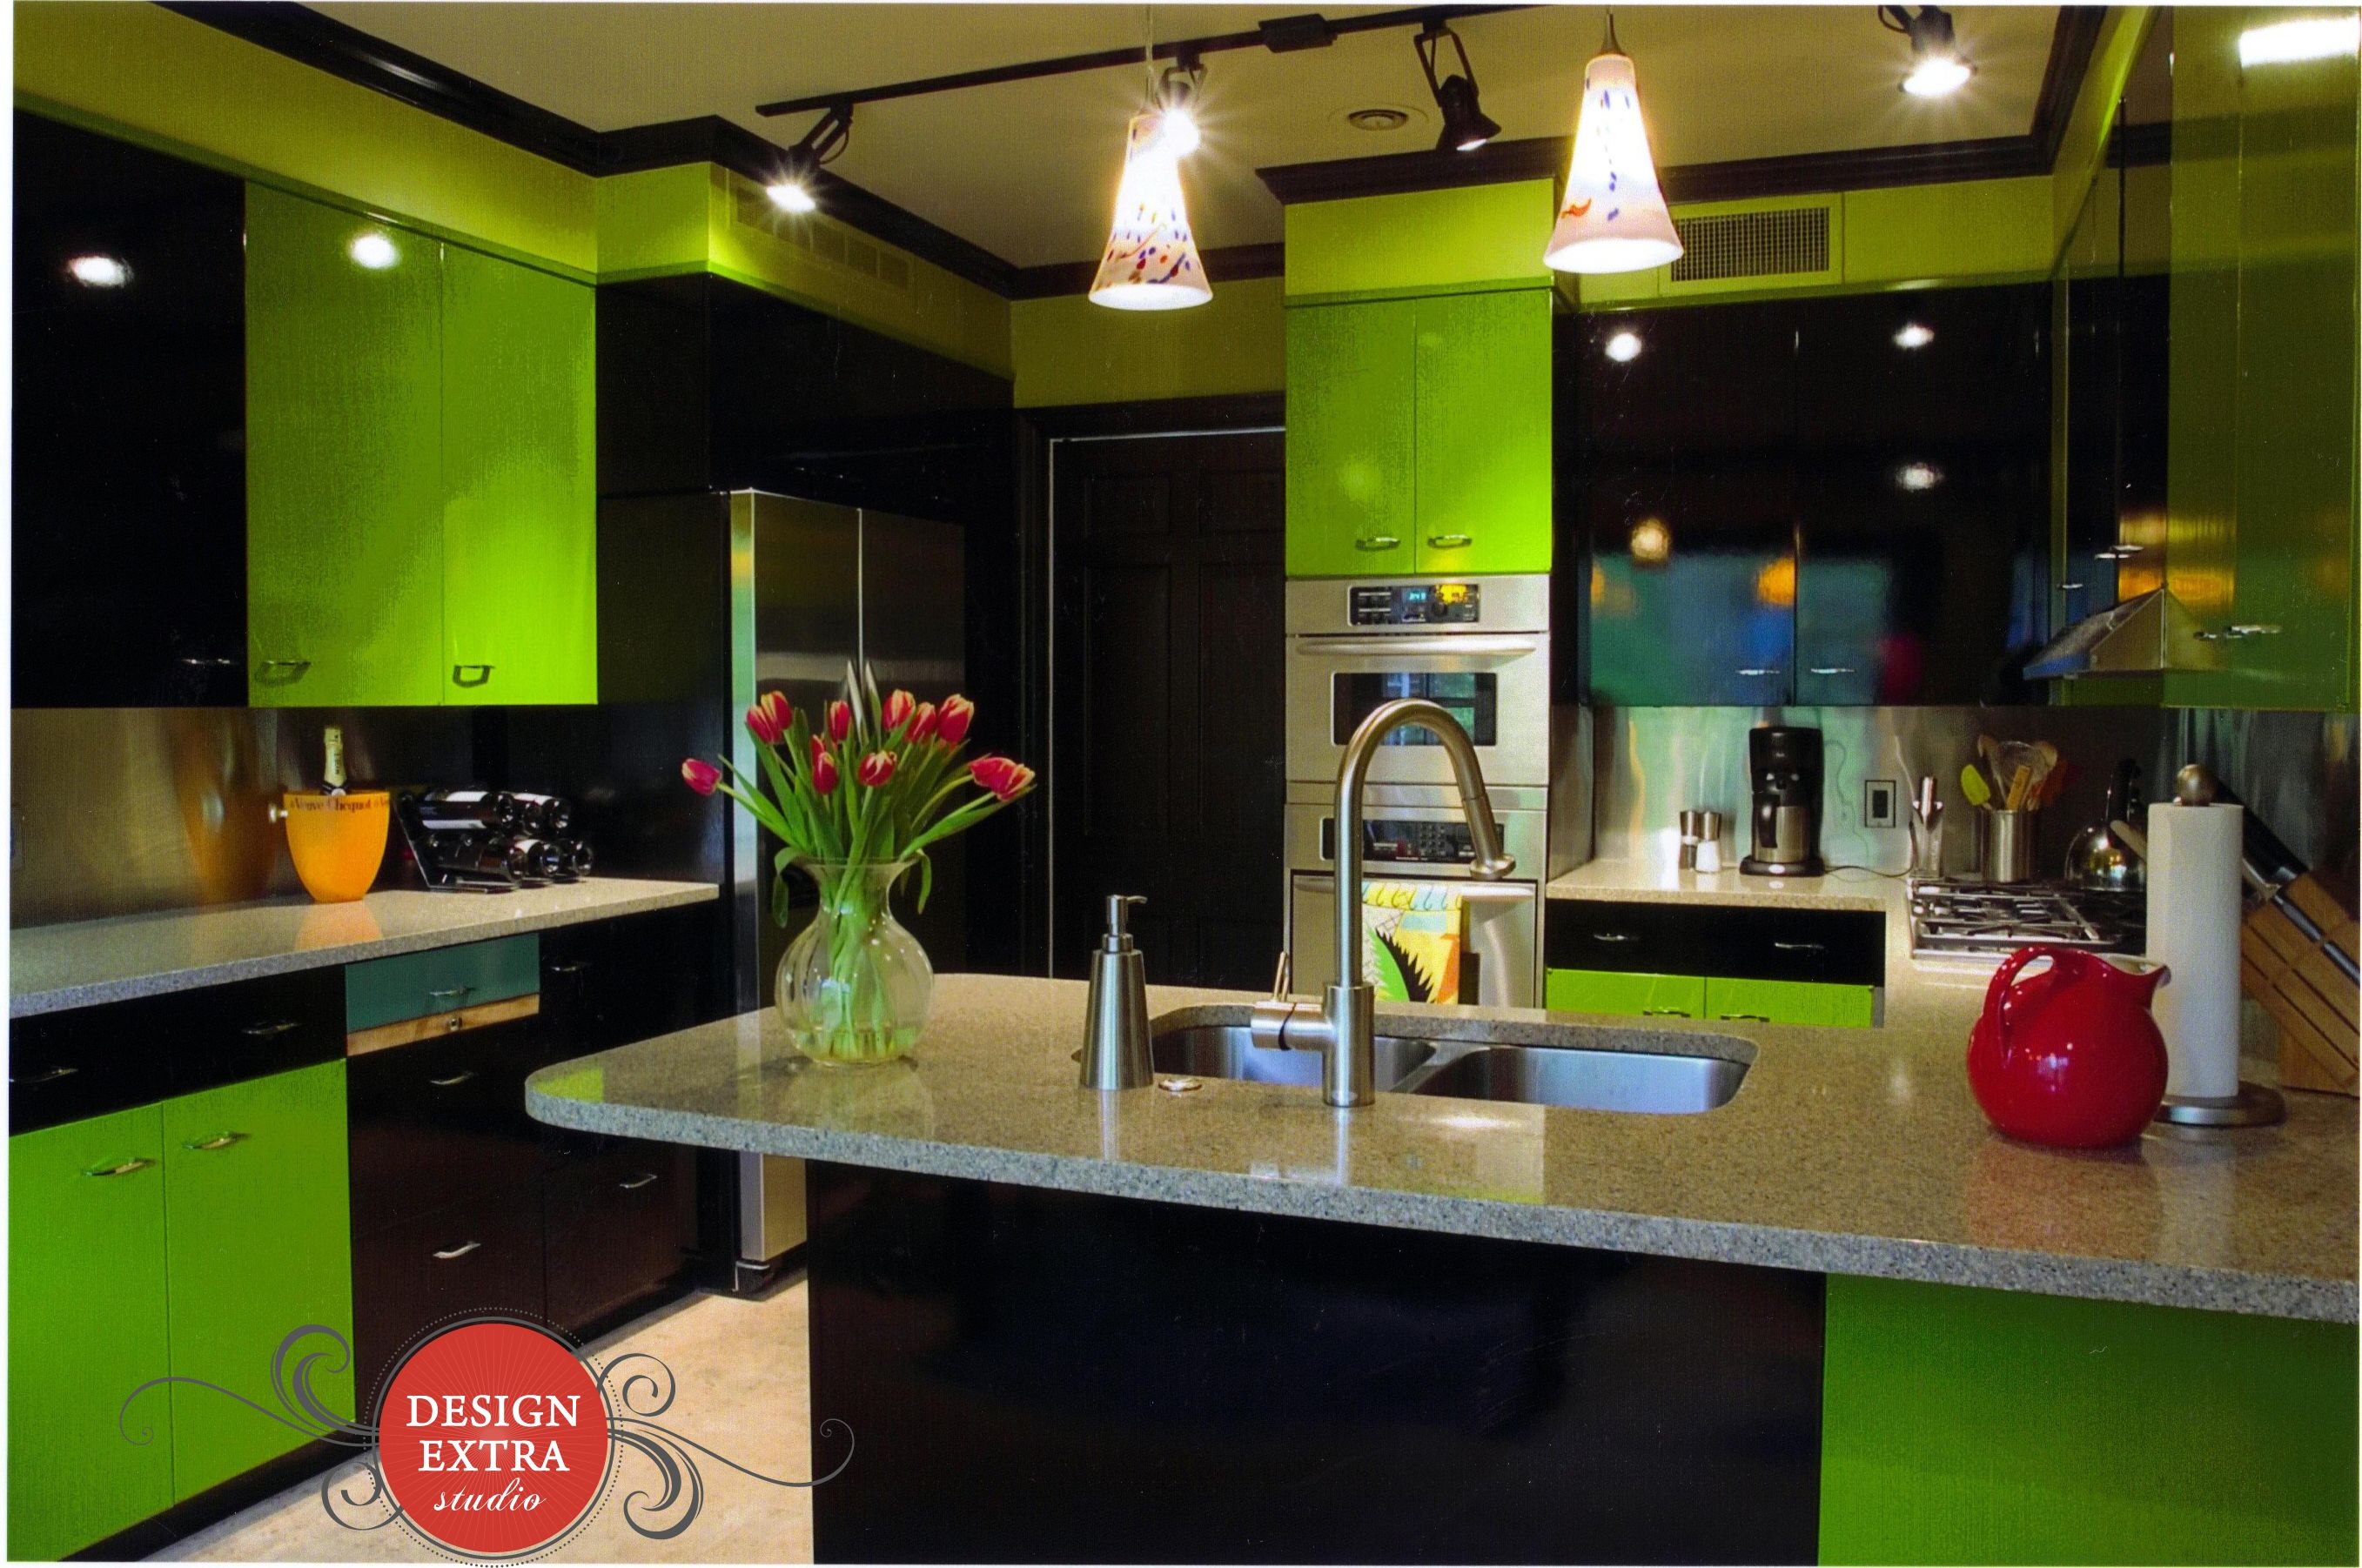 Green Kitchen Design Extra Llc Green Kitchen Kitchen